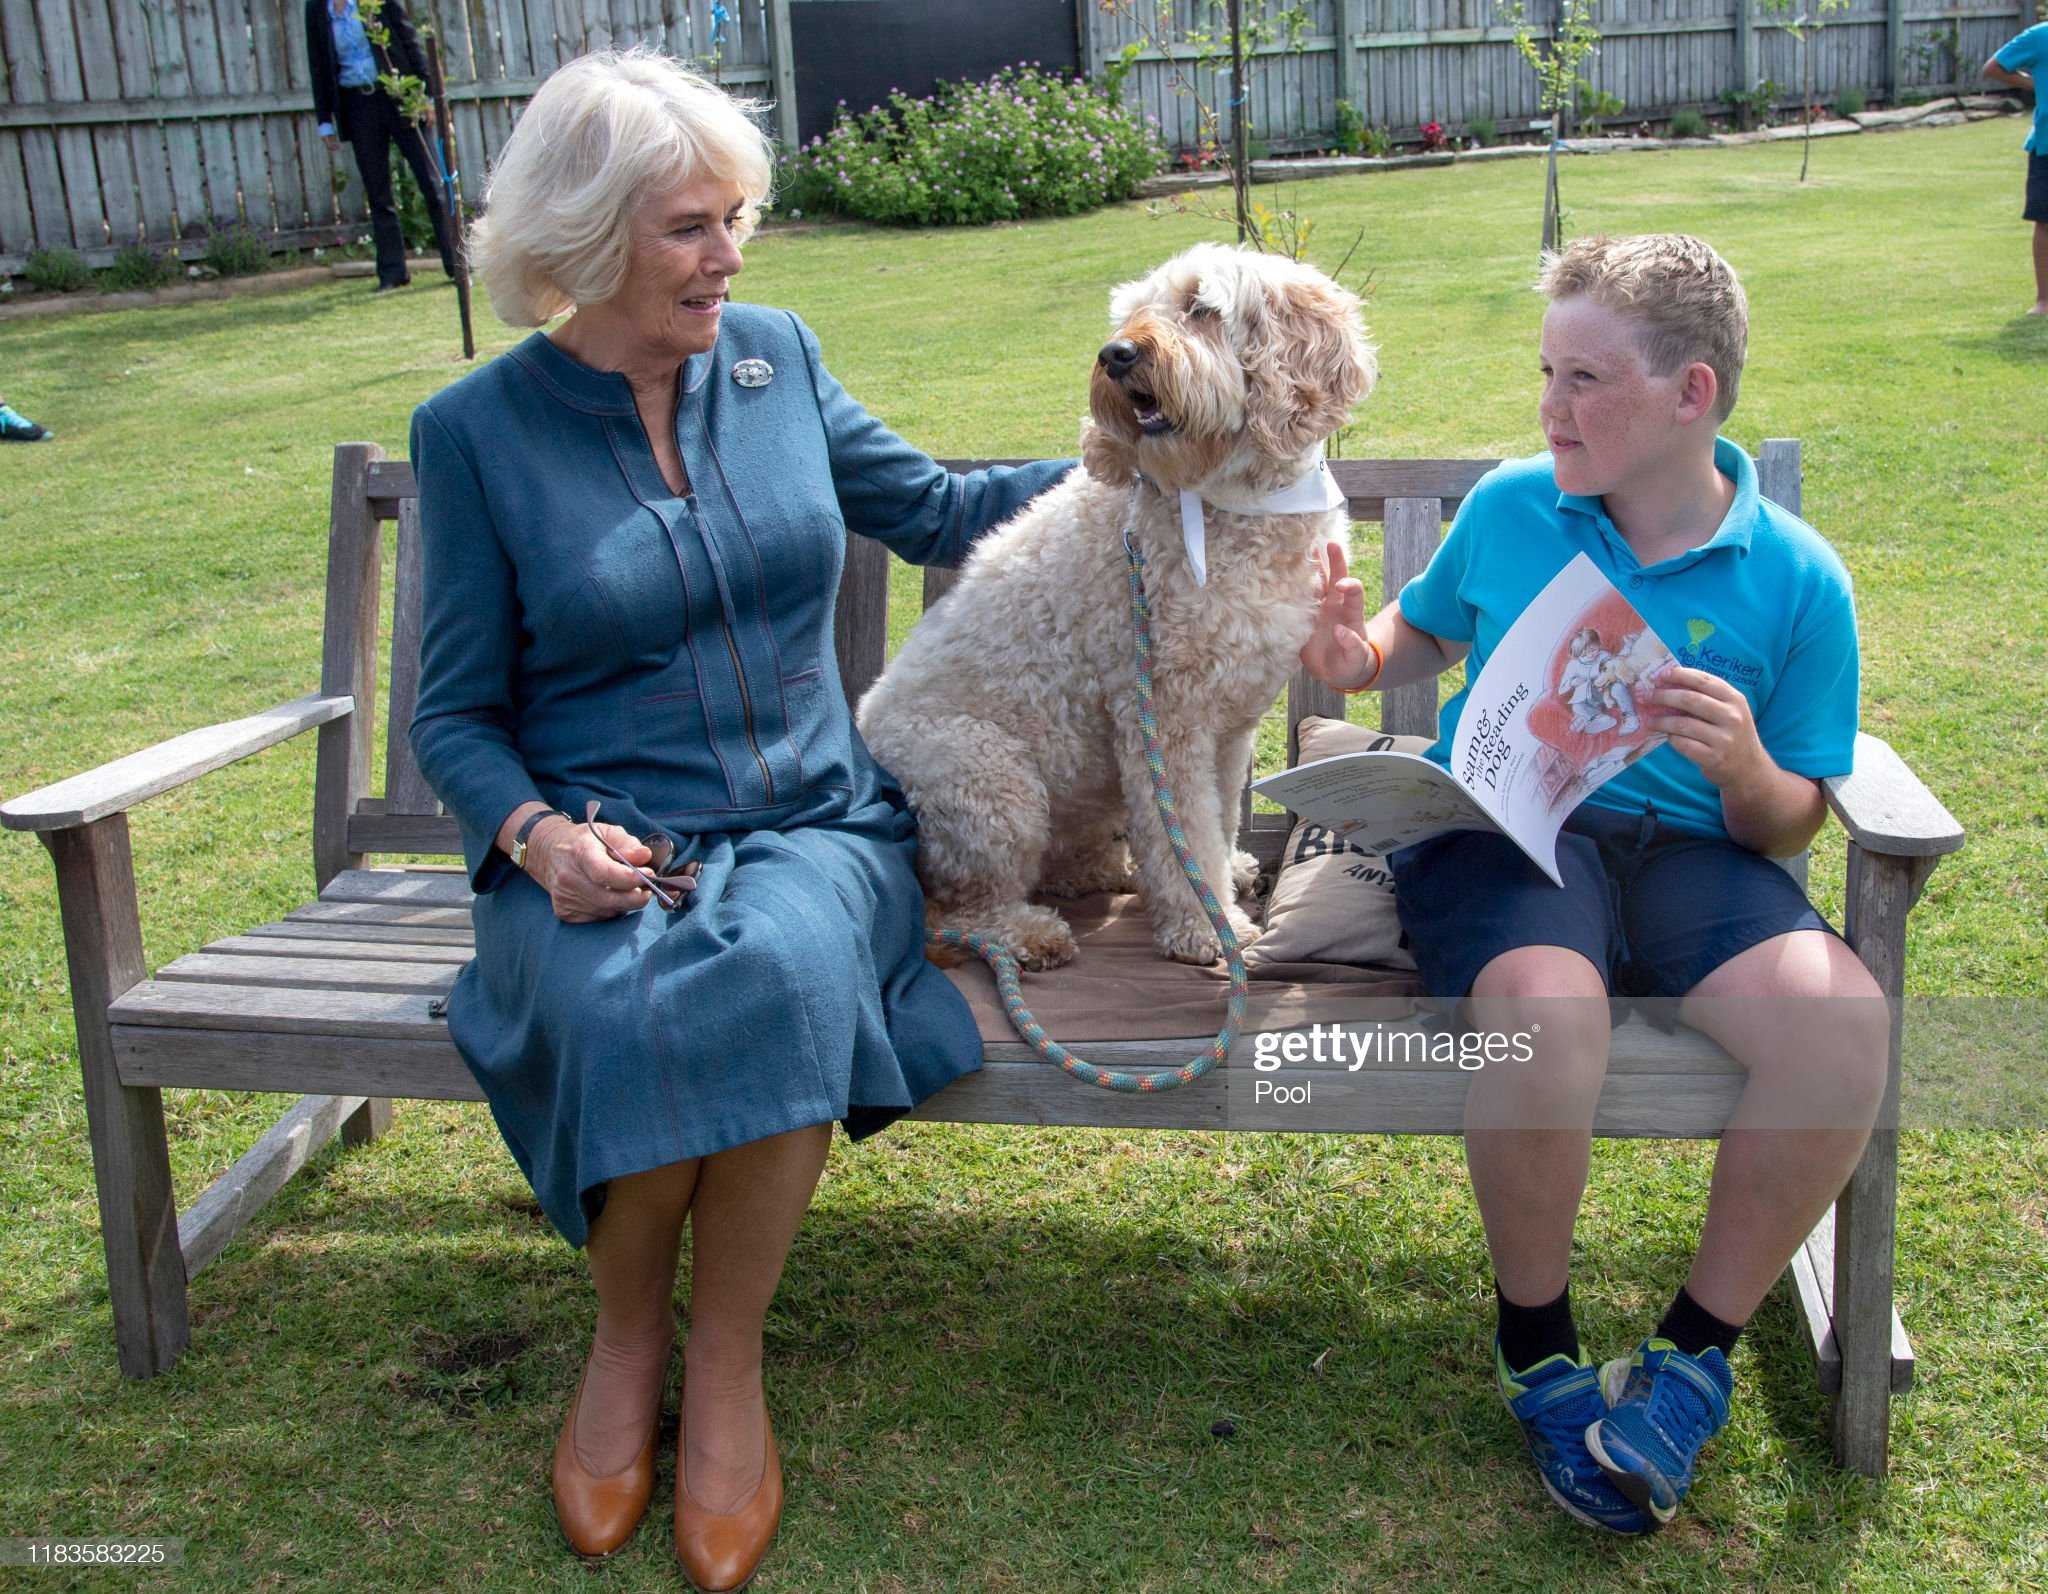 CASA REAL BRITÁNICA - Página 75 Camilla-duchess-of-cornwall-meets-the-schools-therapy-dog-meg-and-picture-id1183583225?s=2048x2048